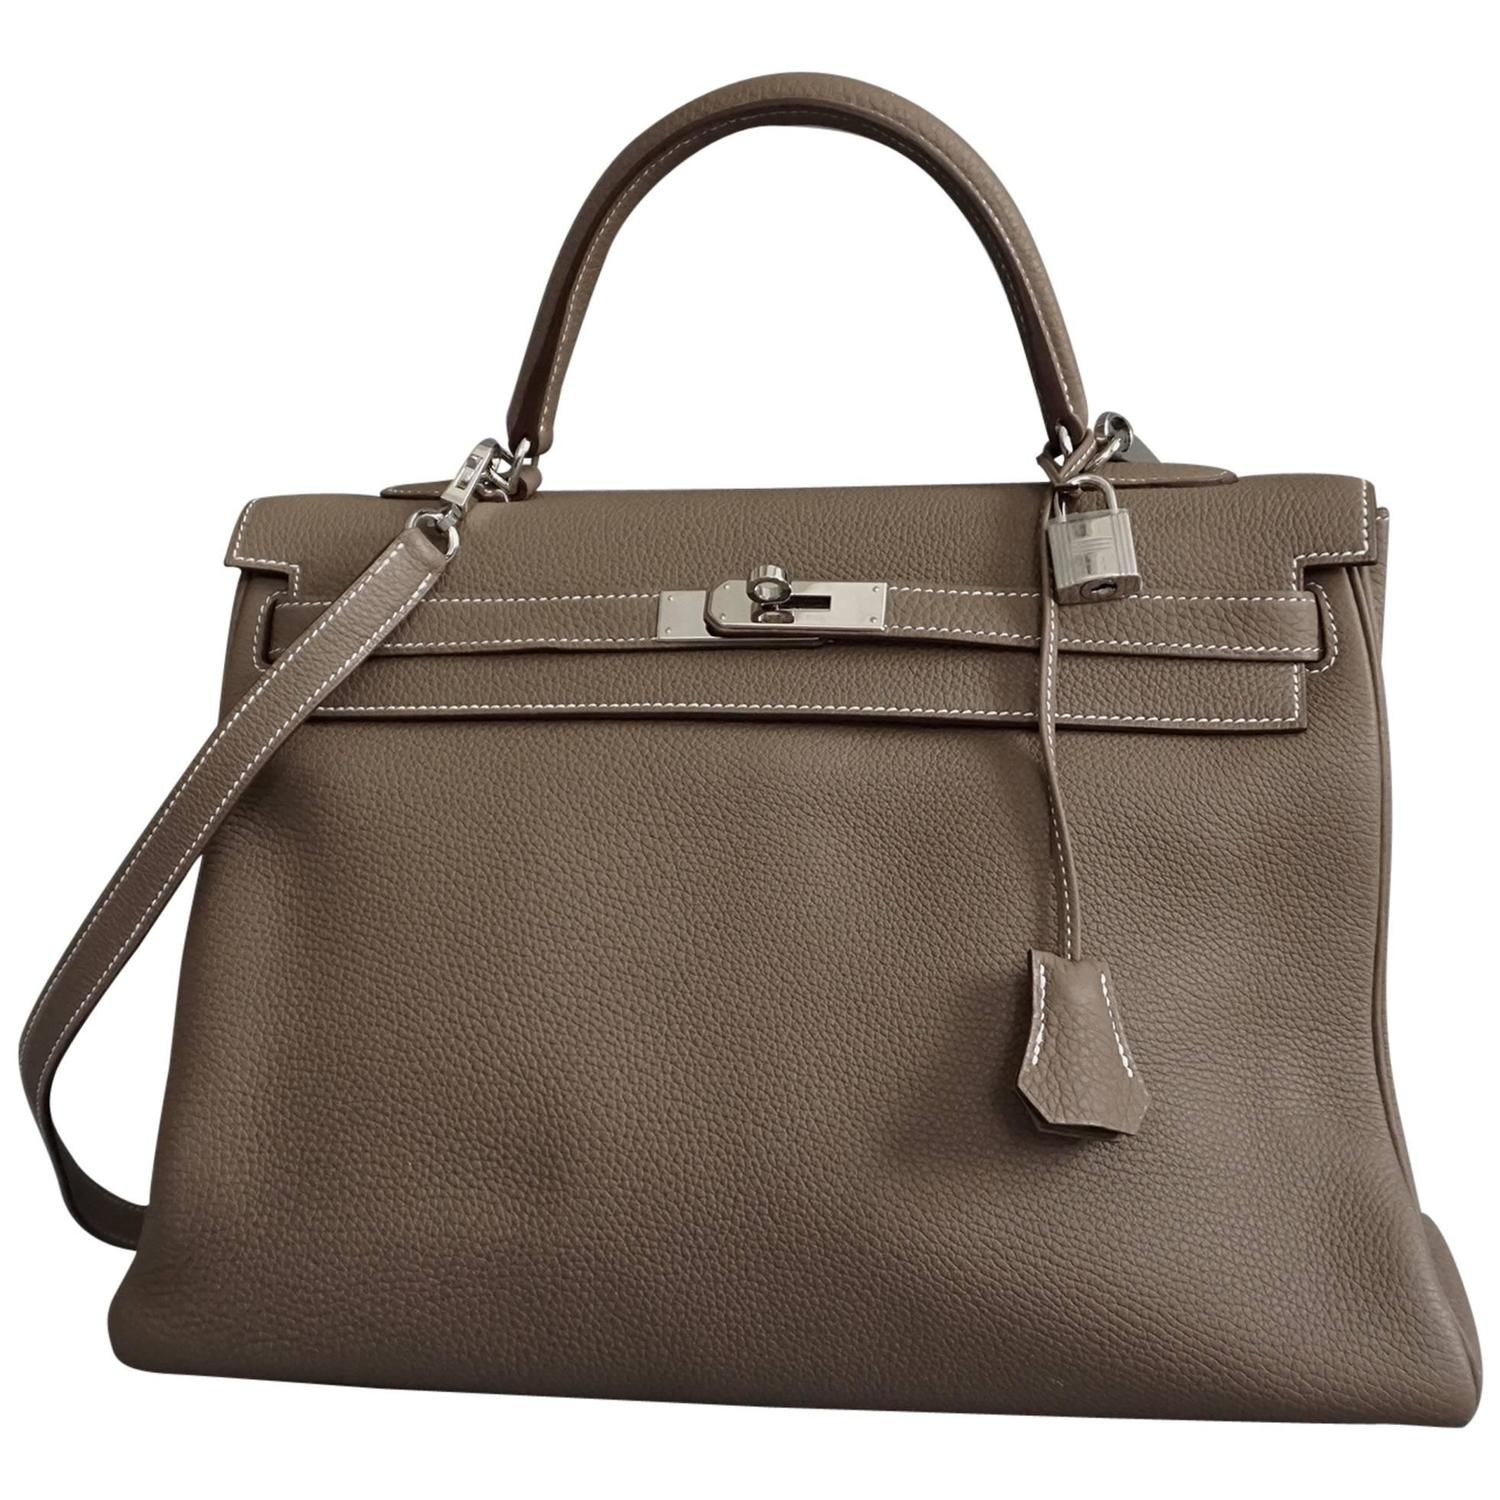 3e6dda6b50a8 HERMES Kelly 35cm Etoupe Soft Leather With PWH